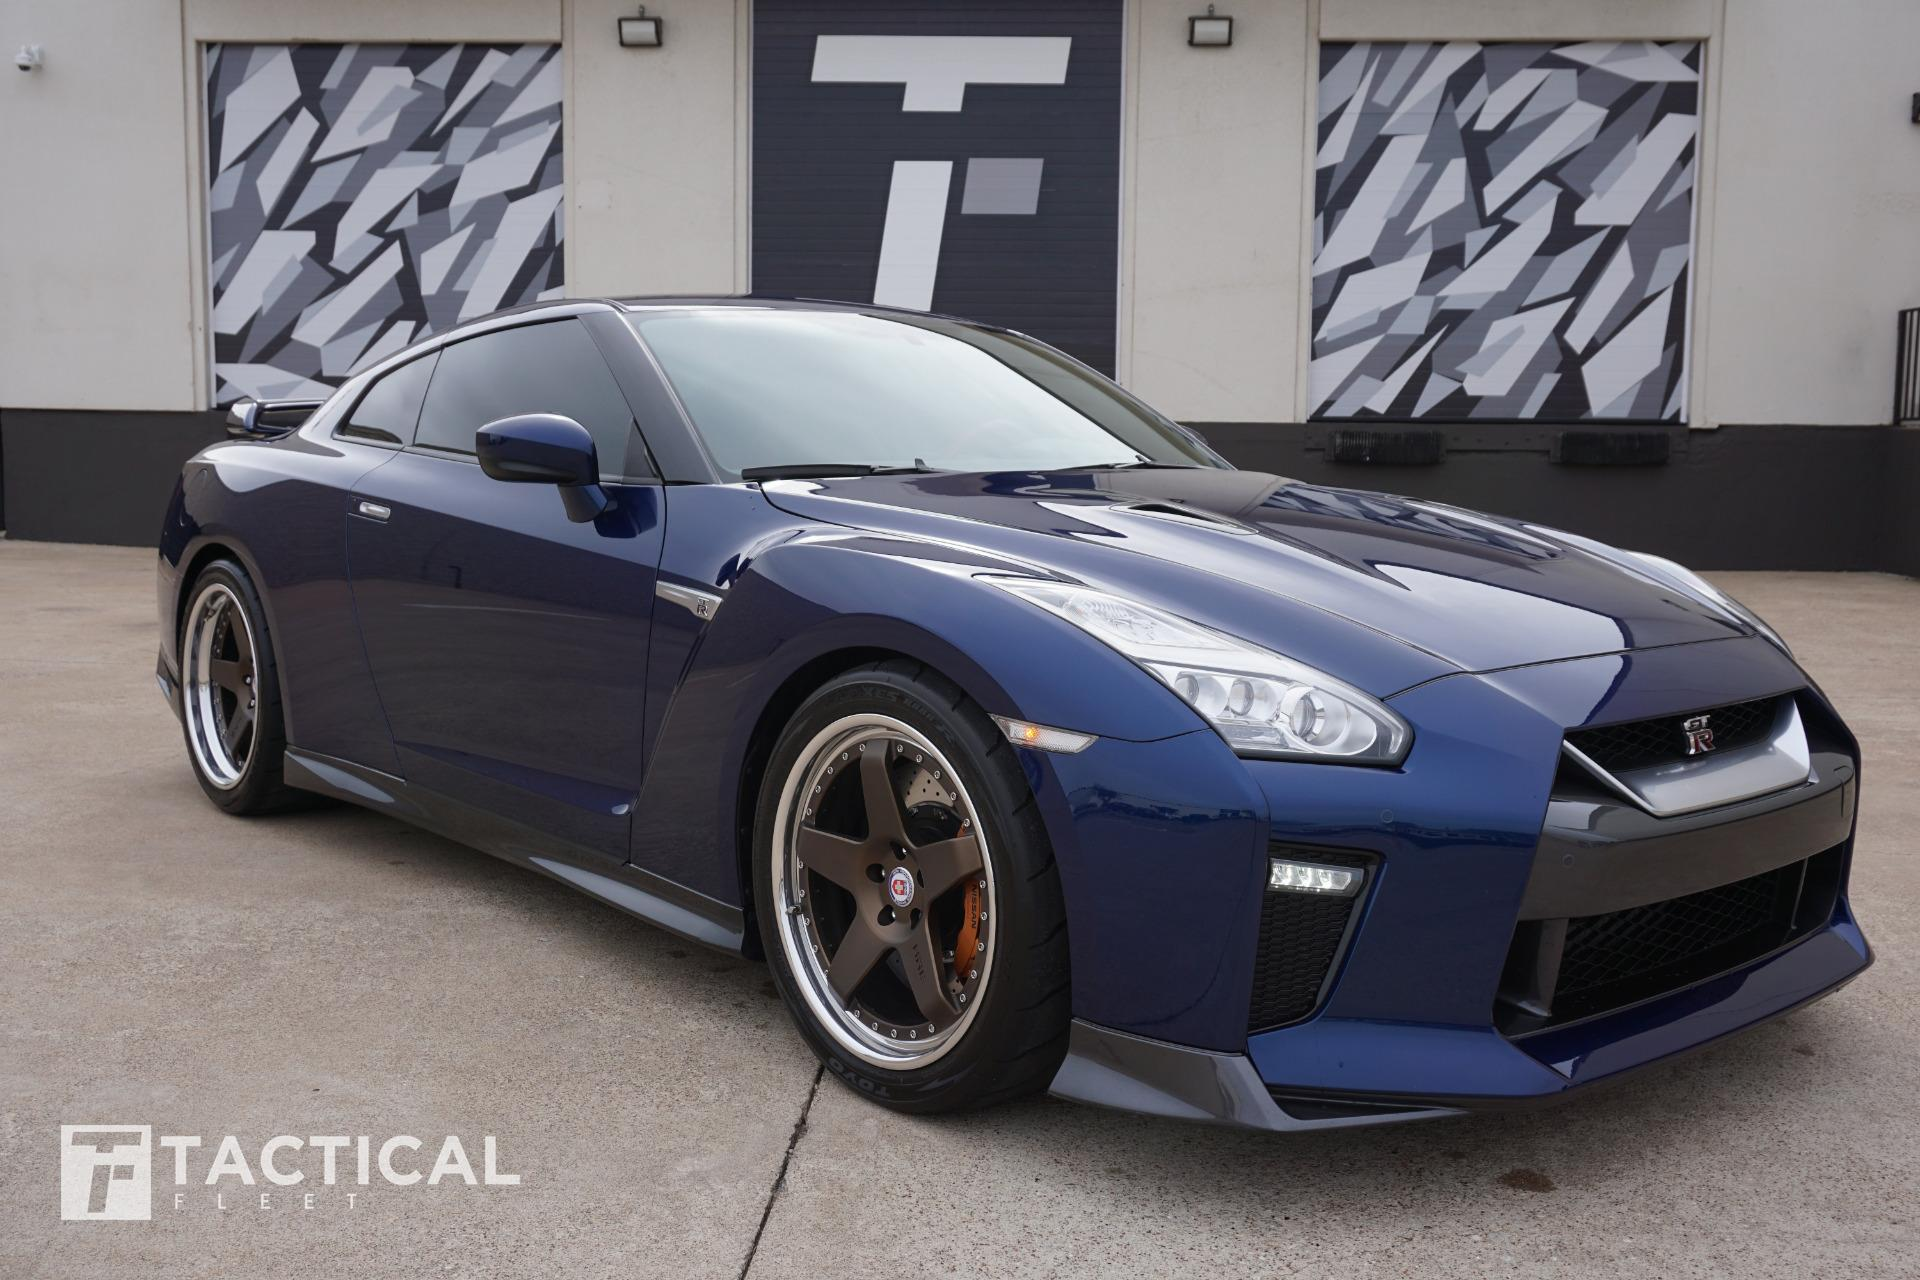 Used Nissan Gt-r for Sale Beautiful Used 2017 Nissan Gt R Premium for Sale $89 900